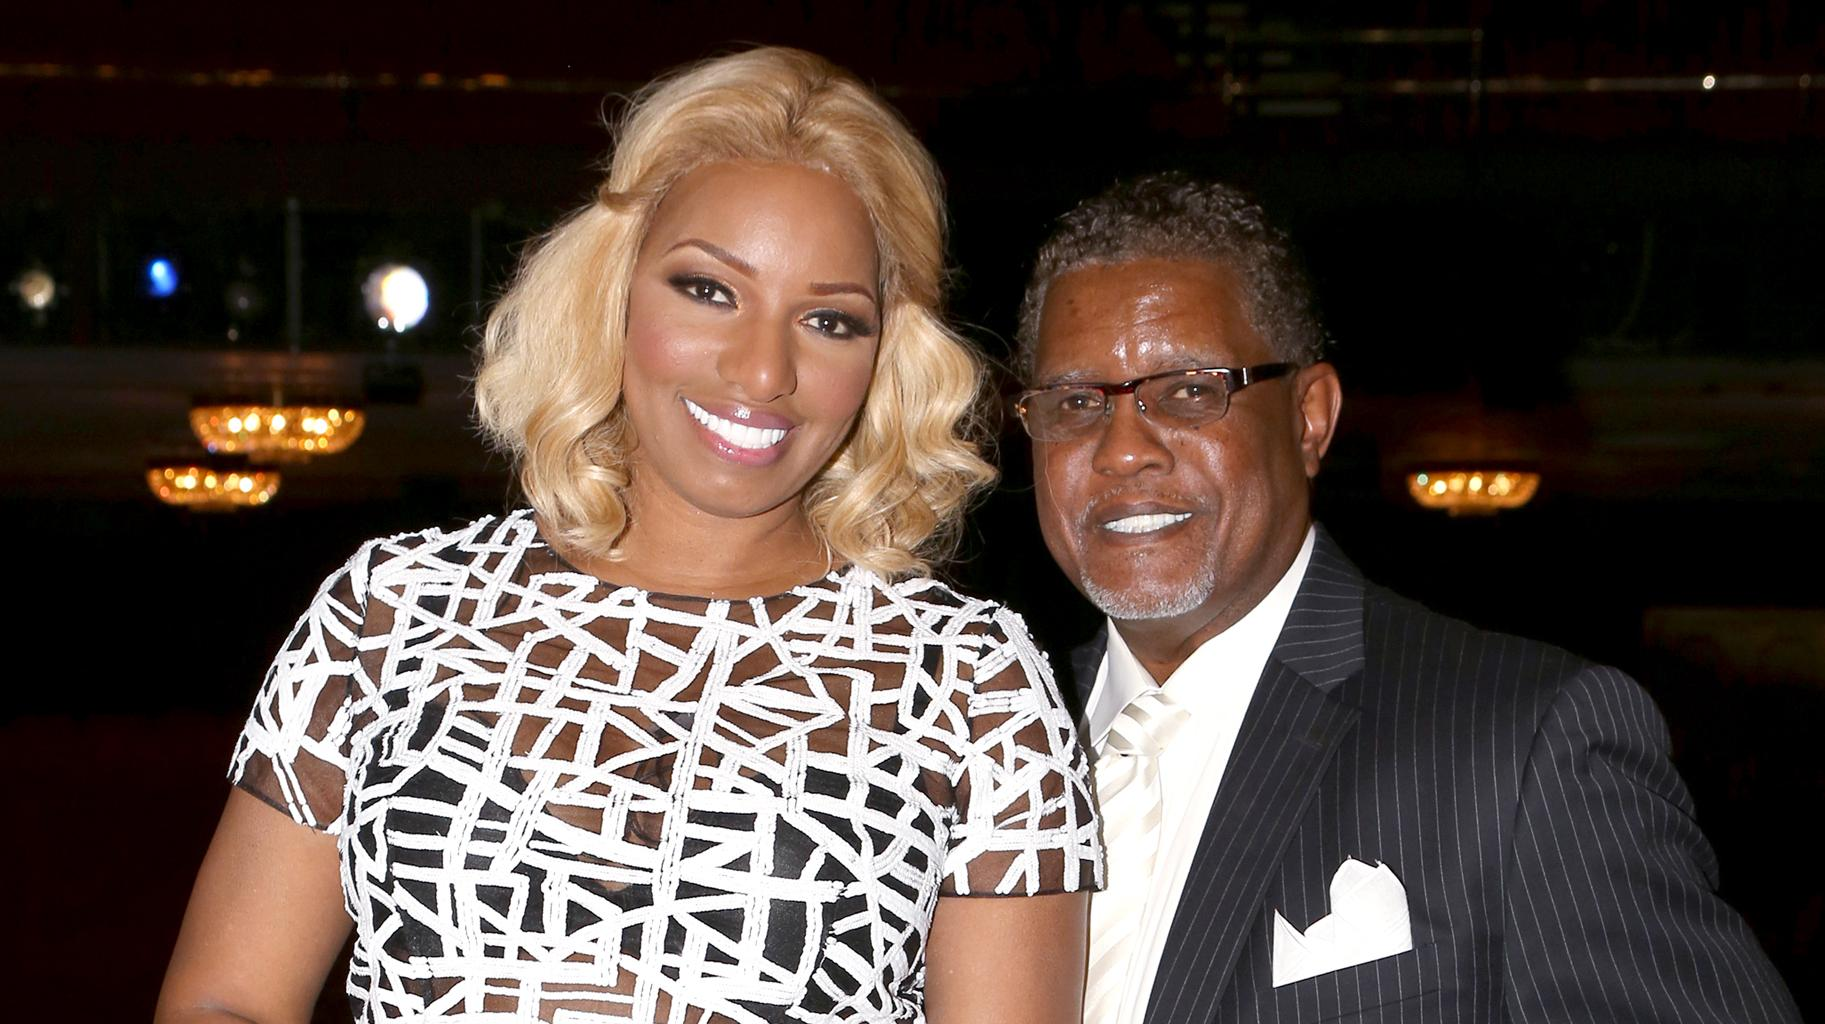 NeNe Leakes' Husband, Gregg Leakes Supports Her Amid Her Feud With Cynthia Bailey - People Believe That 'His' Message Was, In Fact, Written By 'Manipulator' Nene